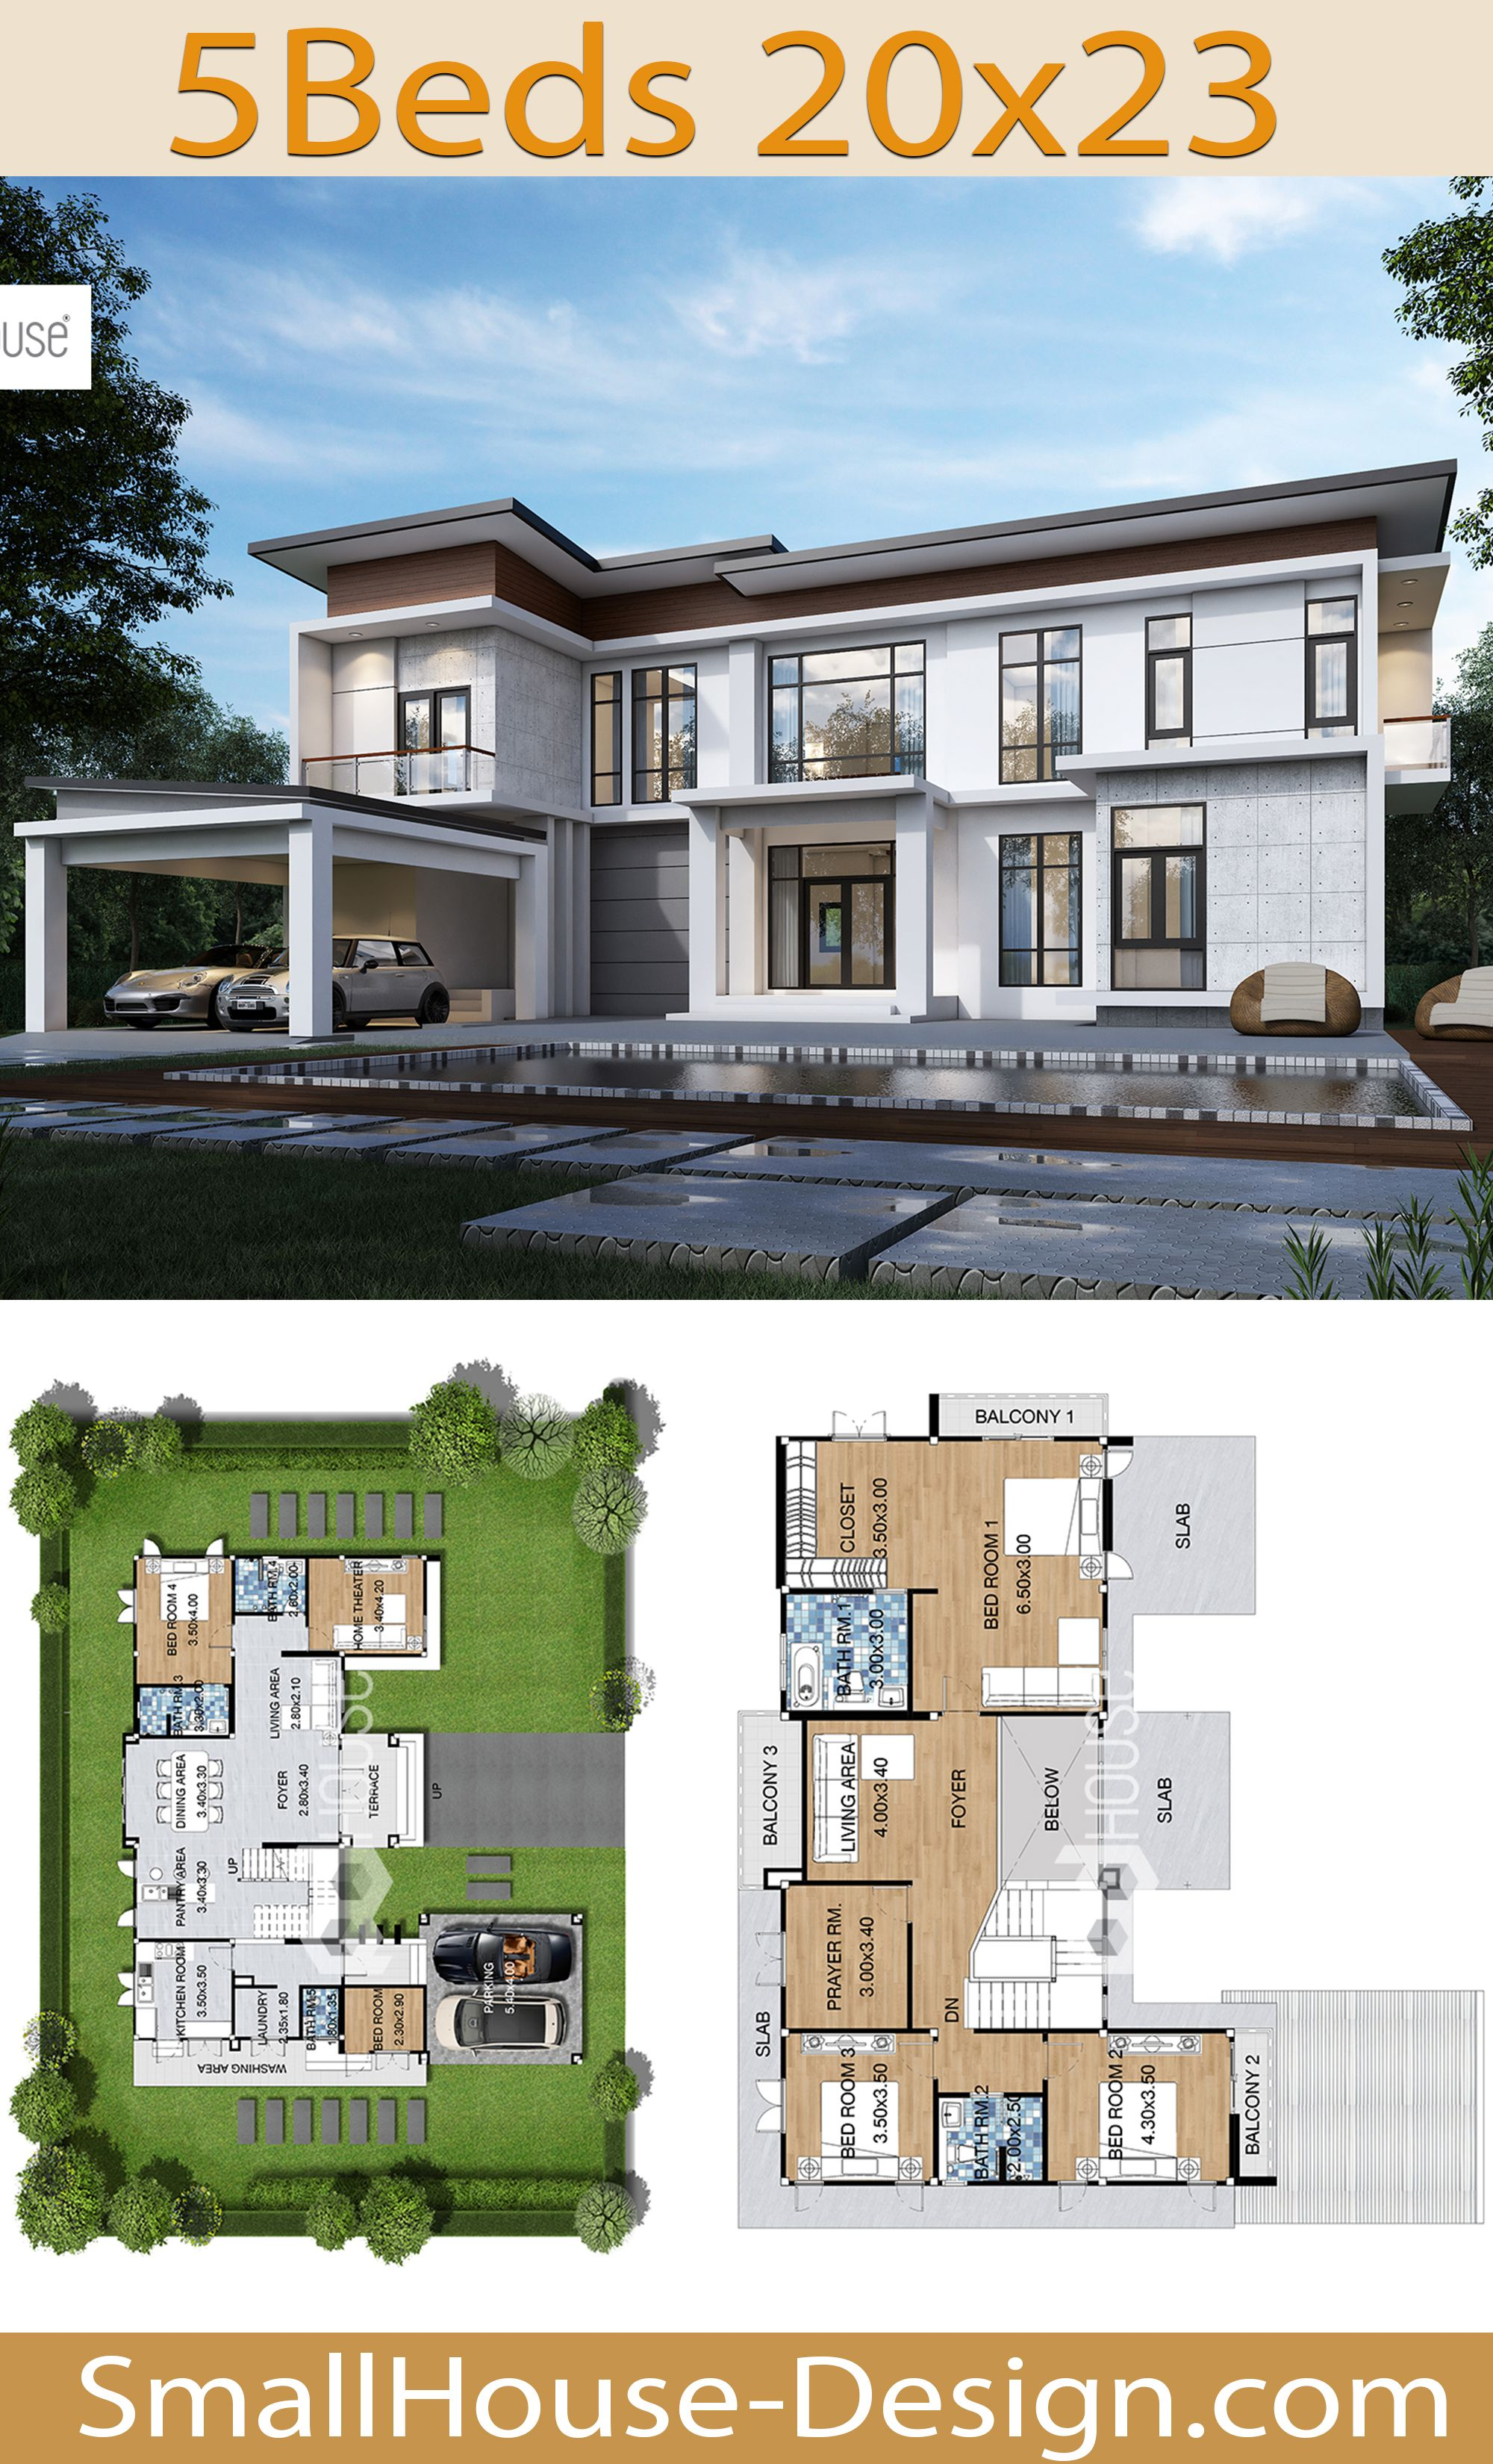 New House Design Plot 20x23 With 5 Bedrooms House Plans Mansion Architectural House Plans Dream House Plans